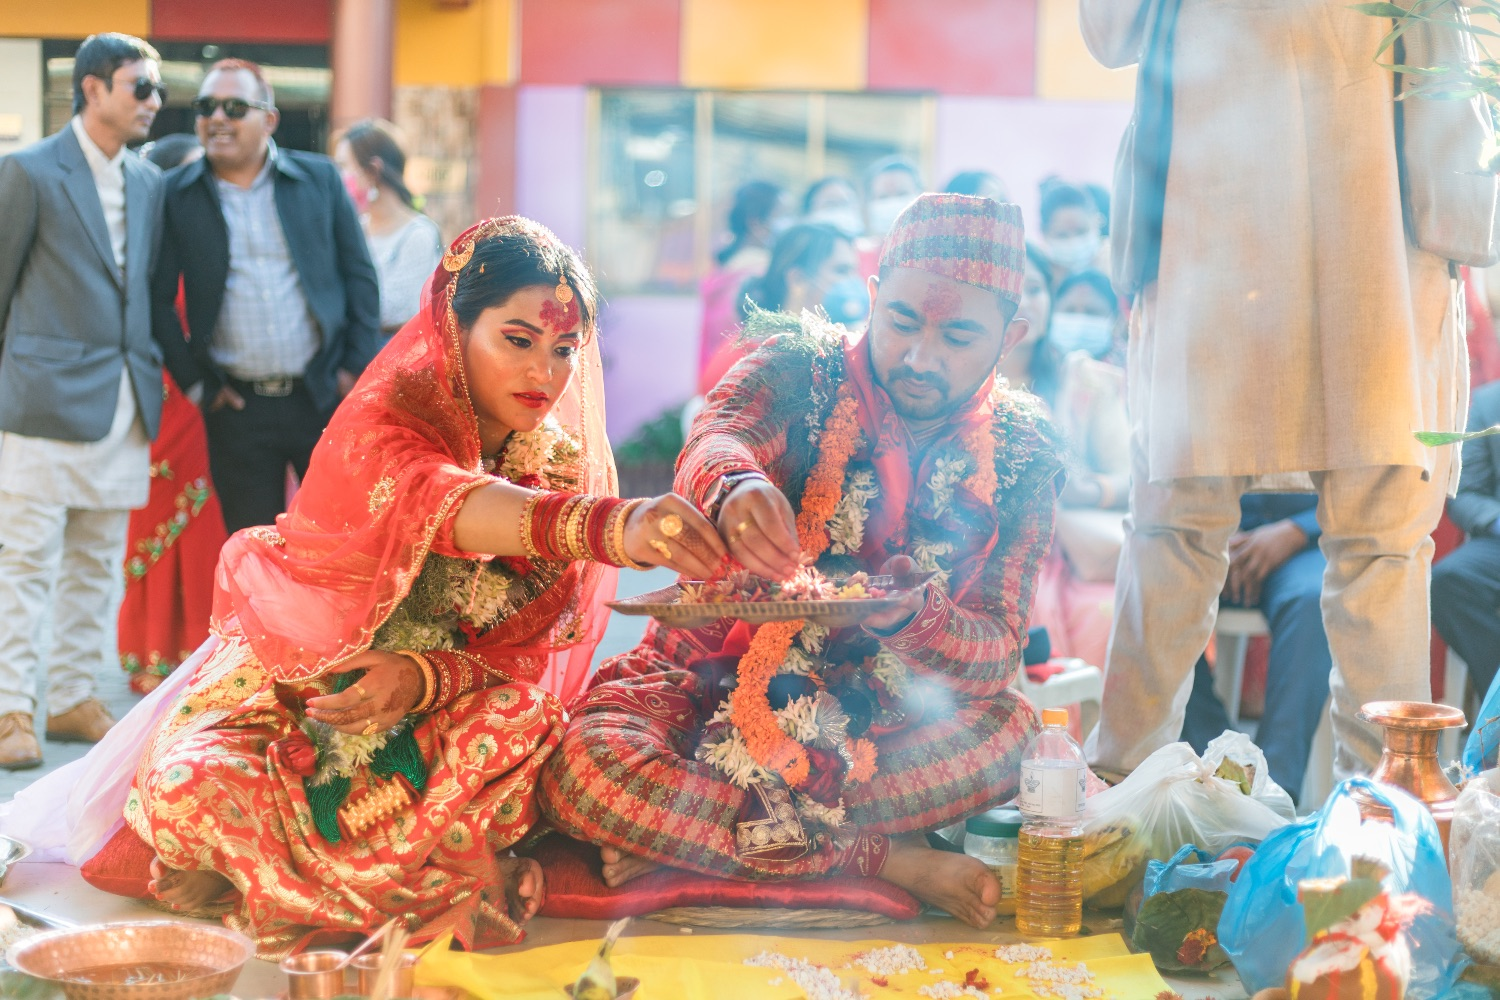 Tying the knot during Covid-19